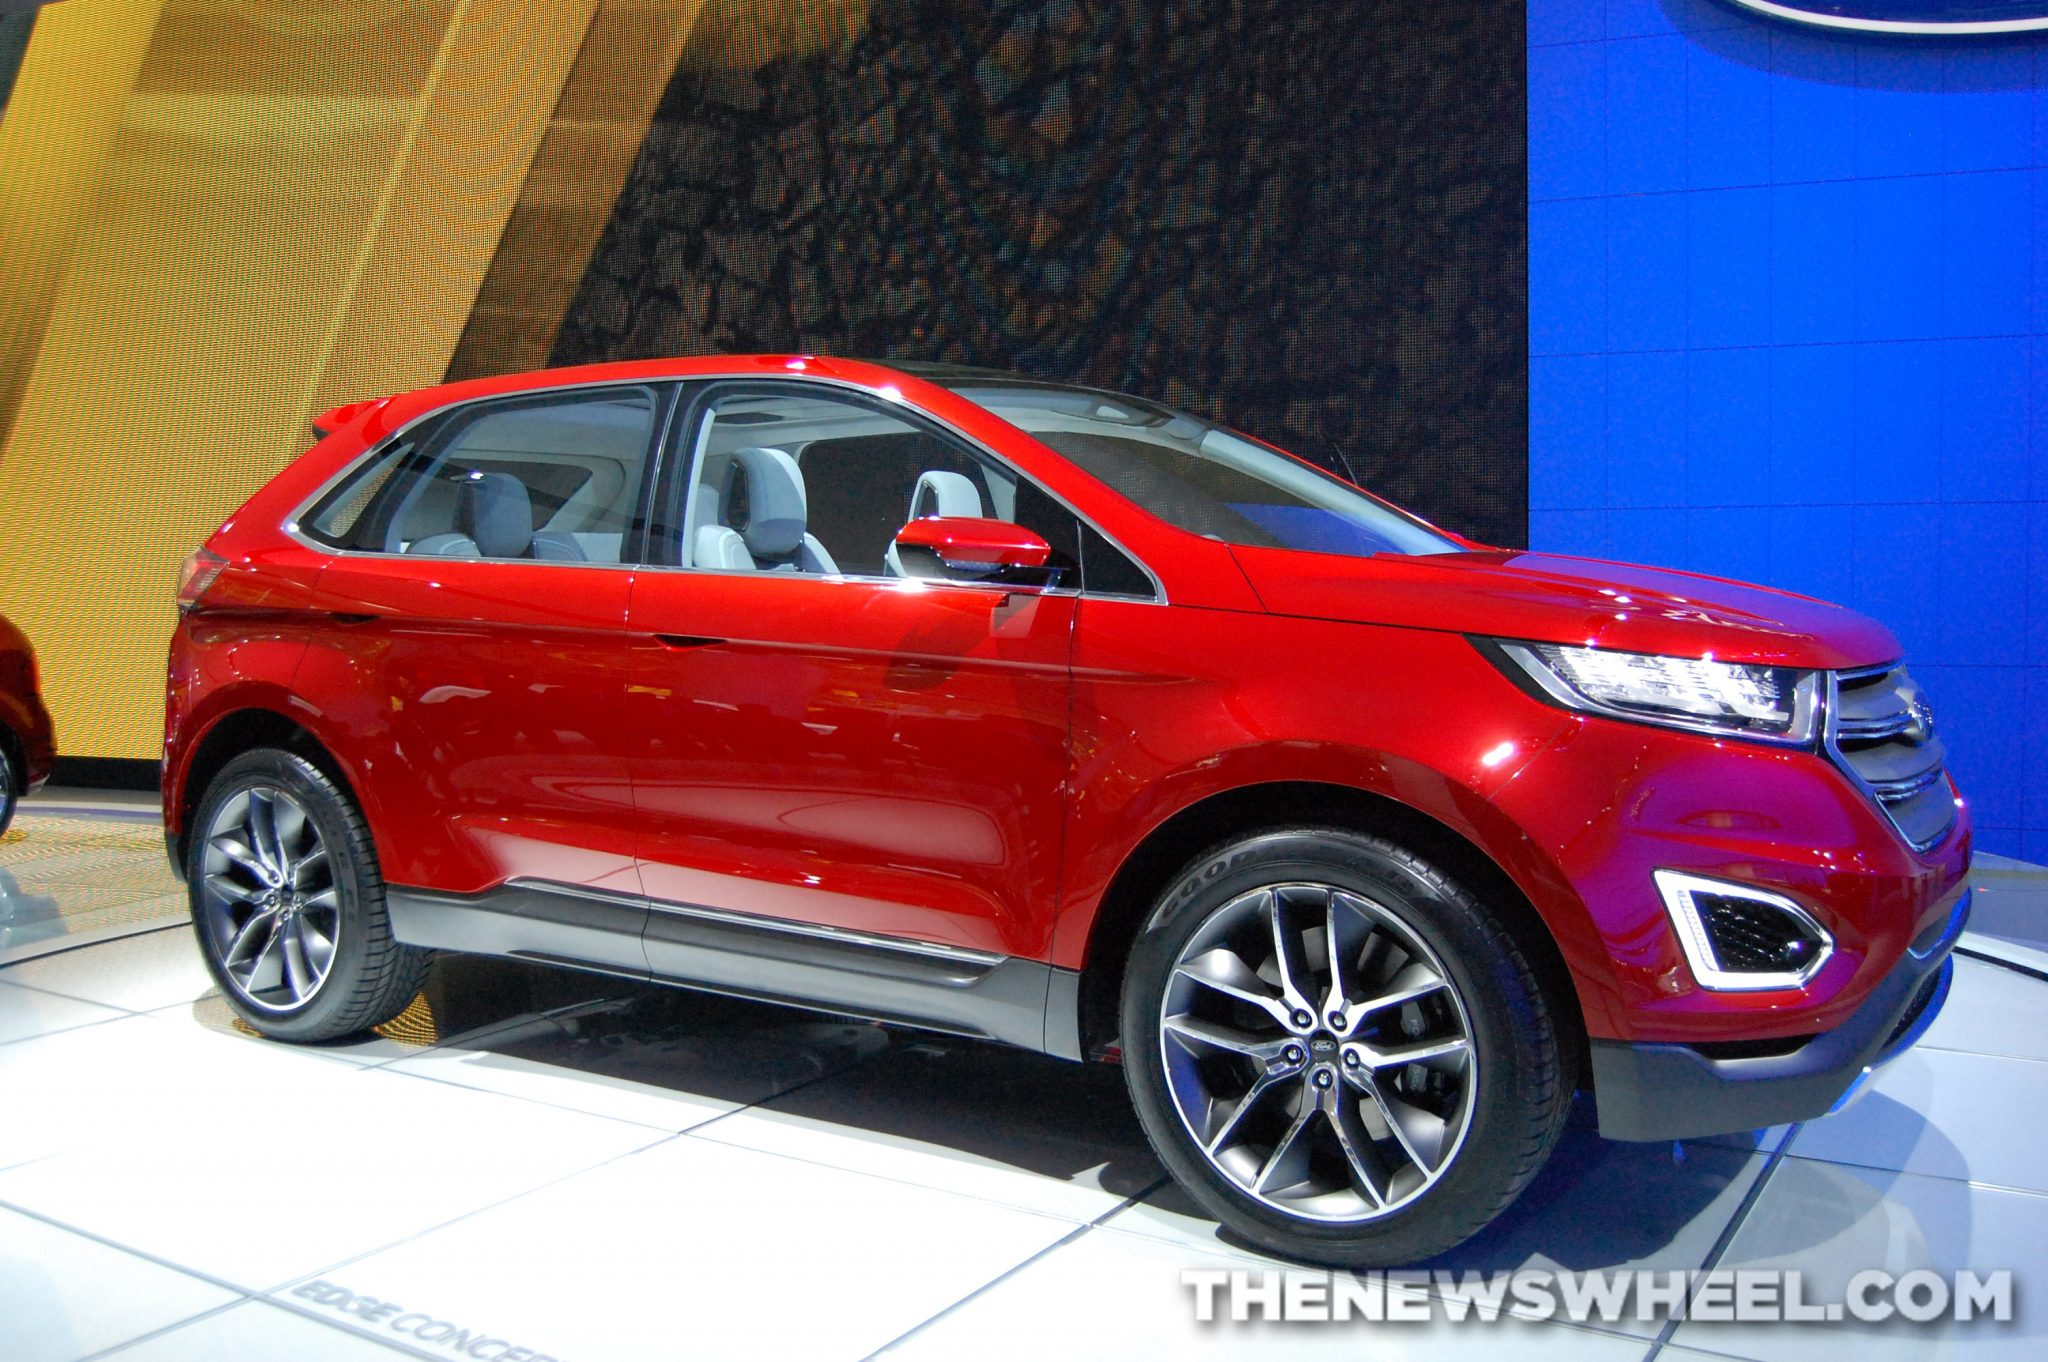 Ford NAIAS display: edge concept